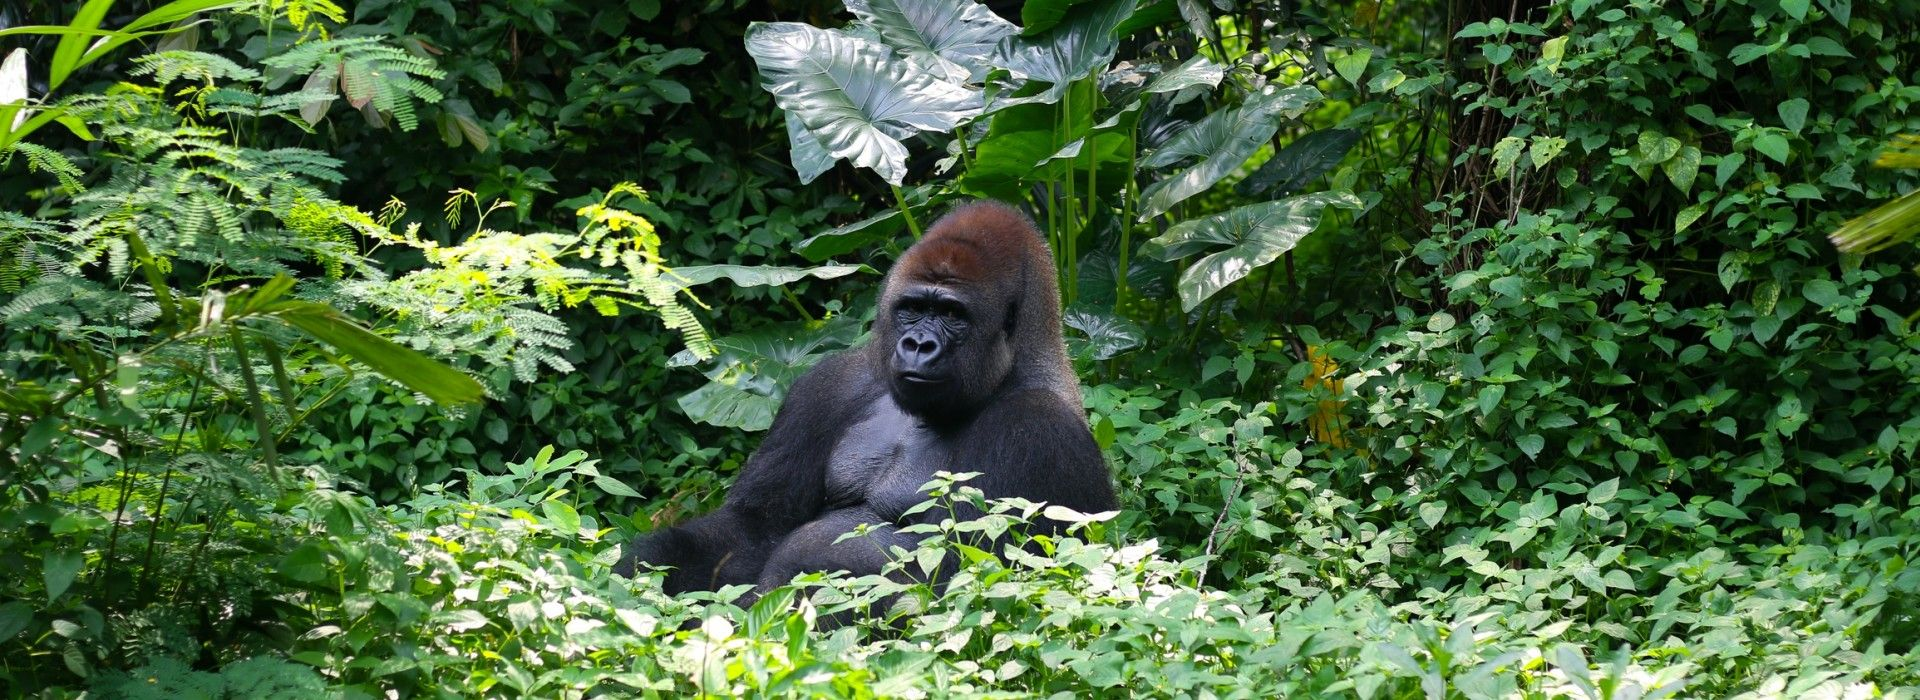 National parks Tours in Kigali